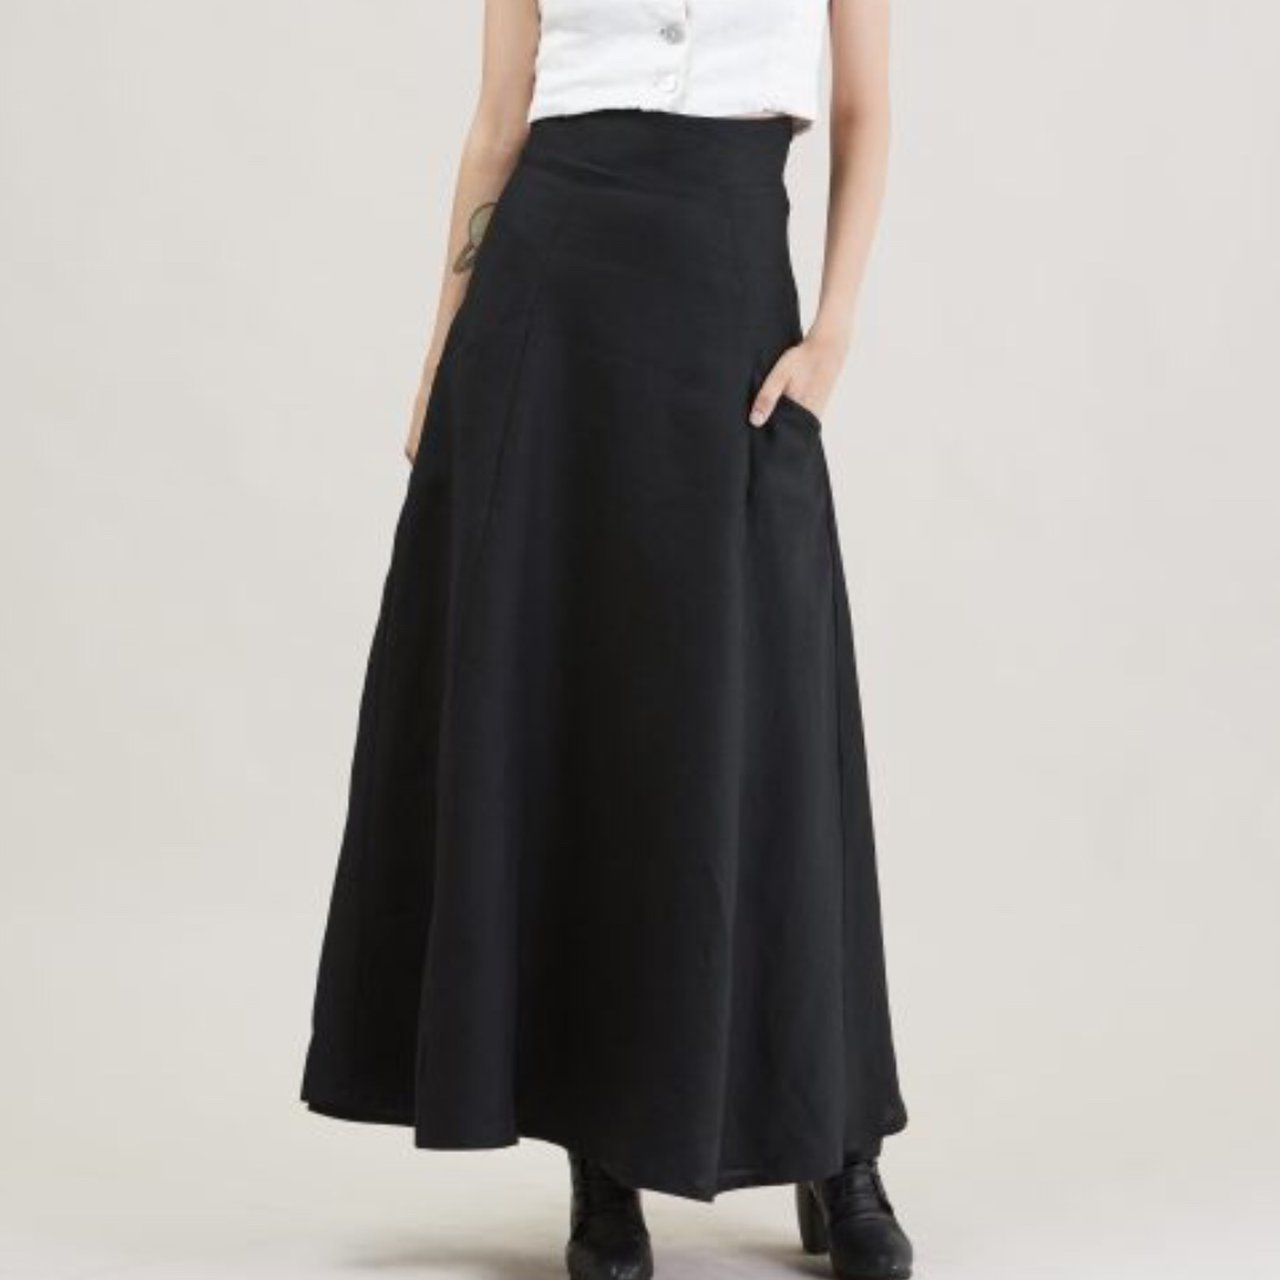 f8e641d422 @nakedghost. 2 years ago. Palmer, United States. FLUIR LINEN SKIRT by SOTBM Black  linen maxi skirt. High waist.